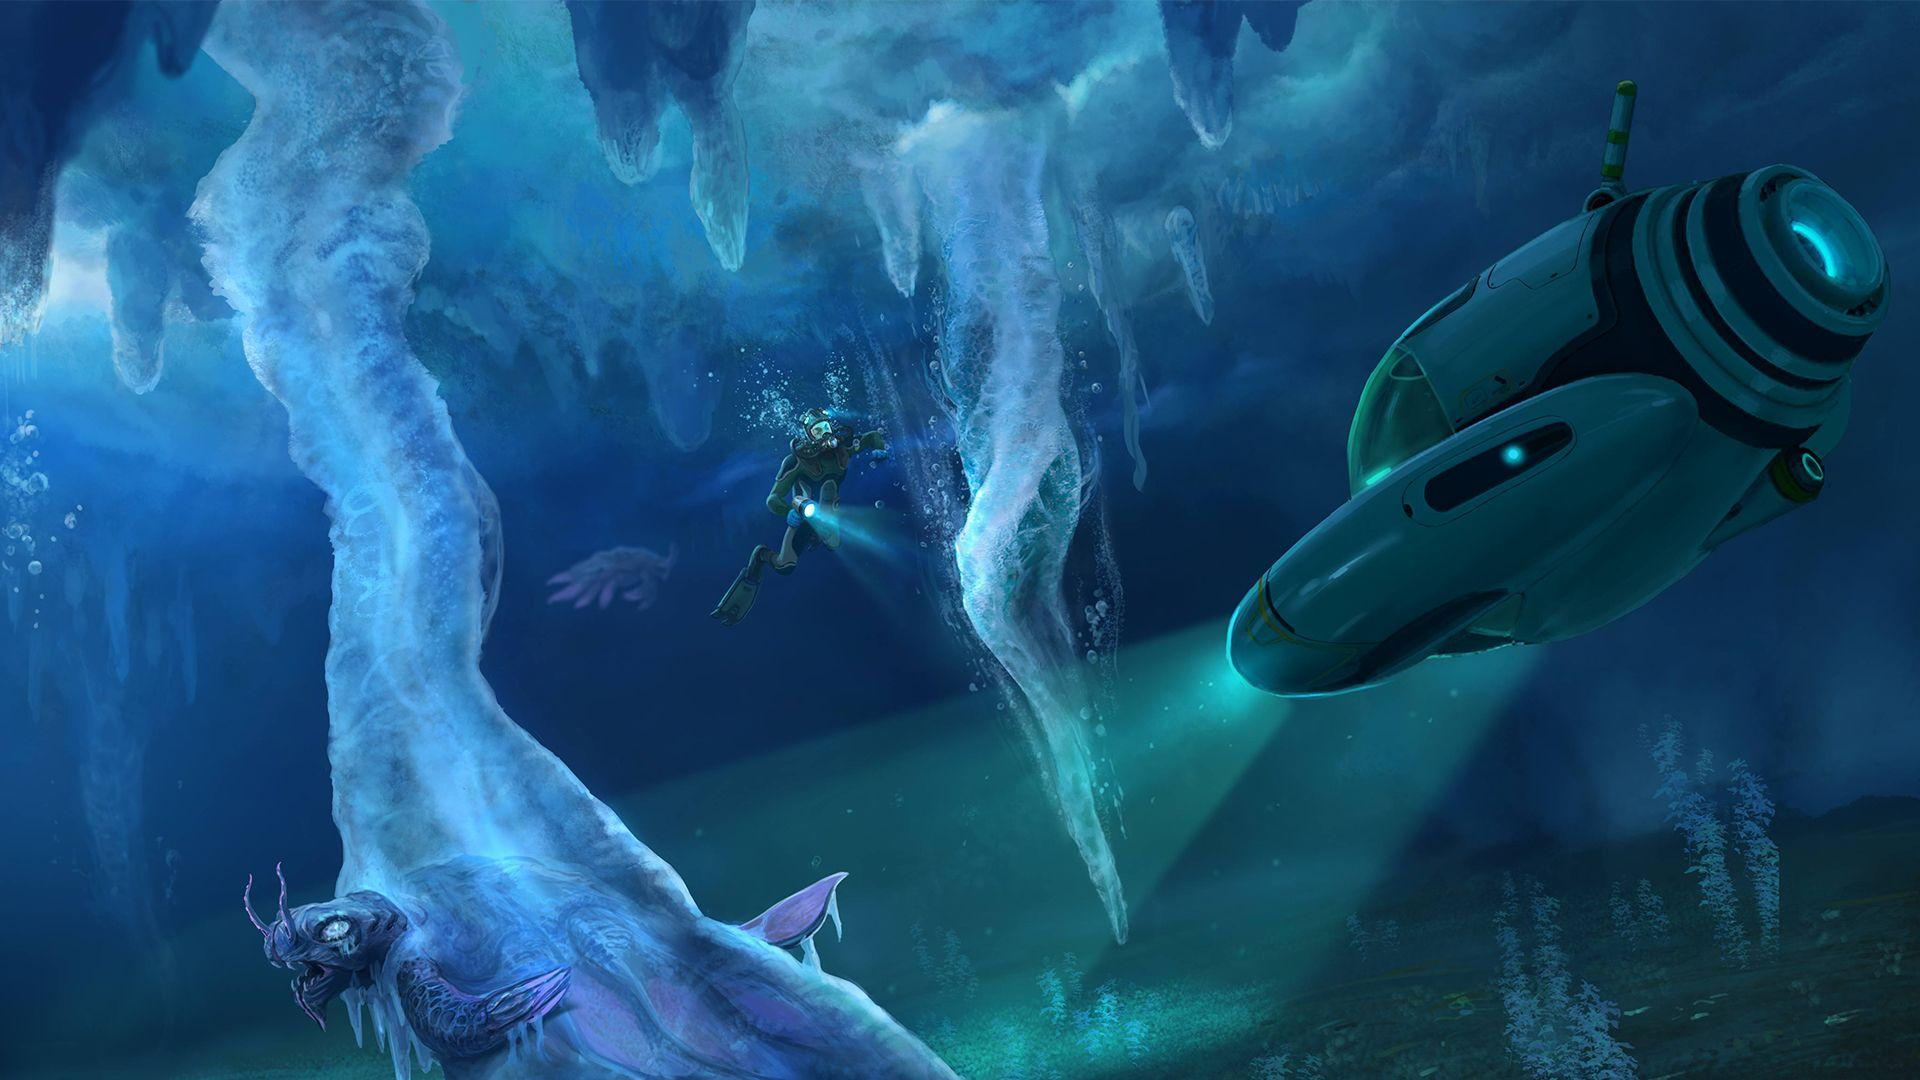 Subnautica goes arctic in Below Zero, a new expansion playable this